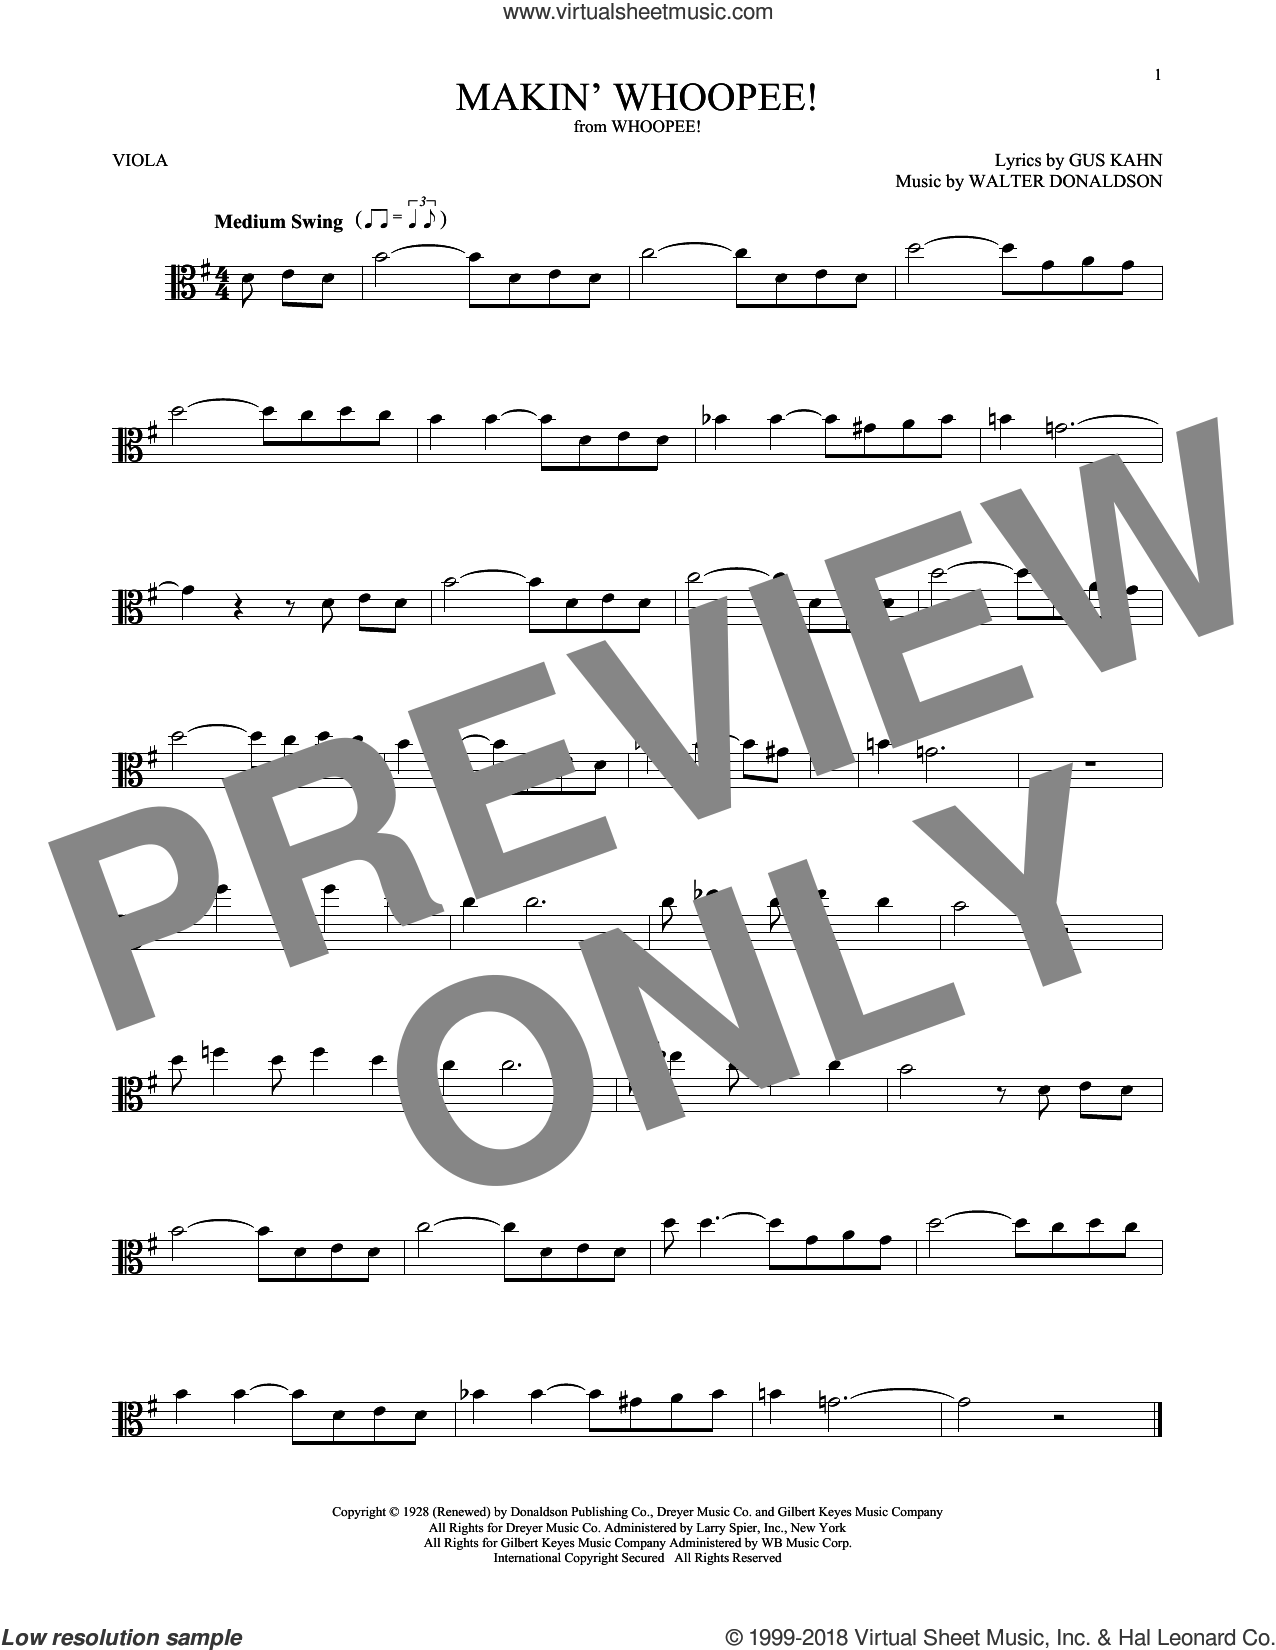 Makin' Whoopee! sheet music for viola solo by Gus Kahn, John Hicks and Walter Donaldson, intermediate skill level